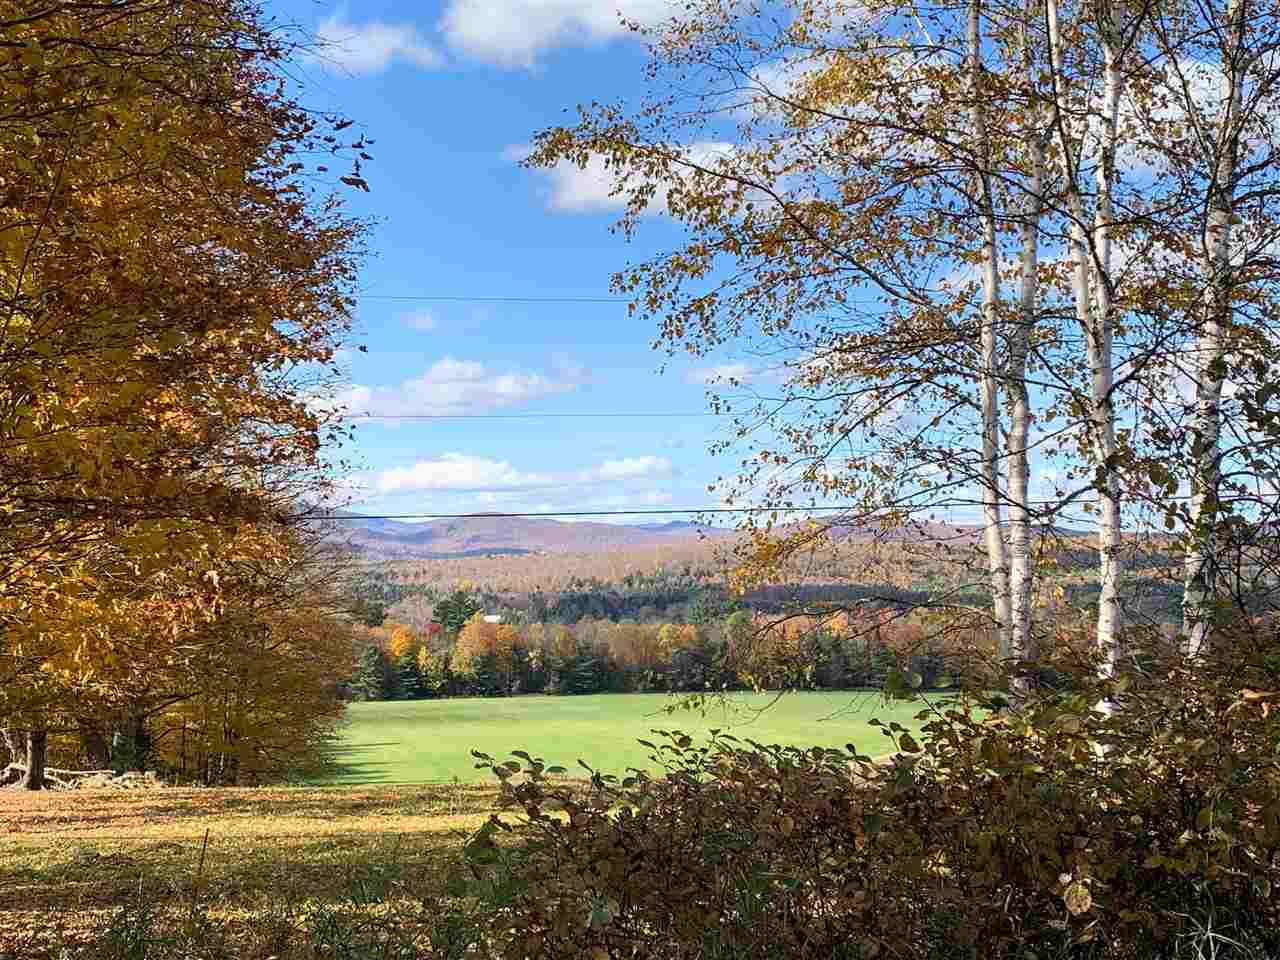 Vermont-Real-Estate-4765031-1